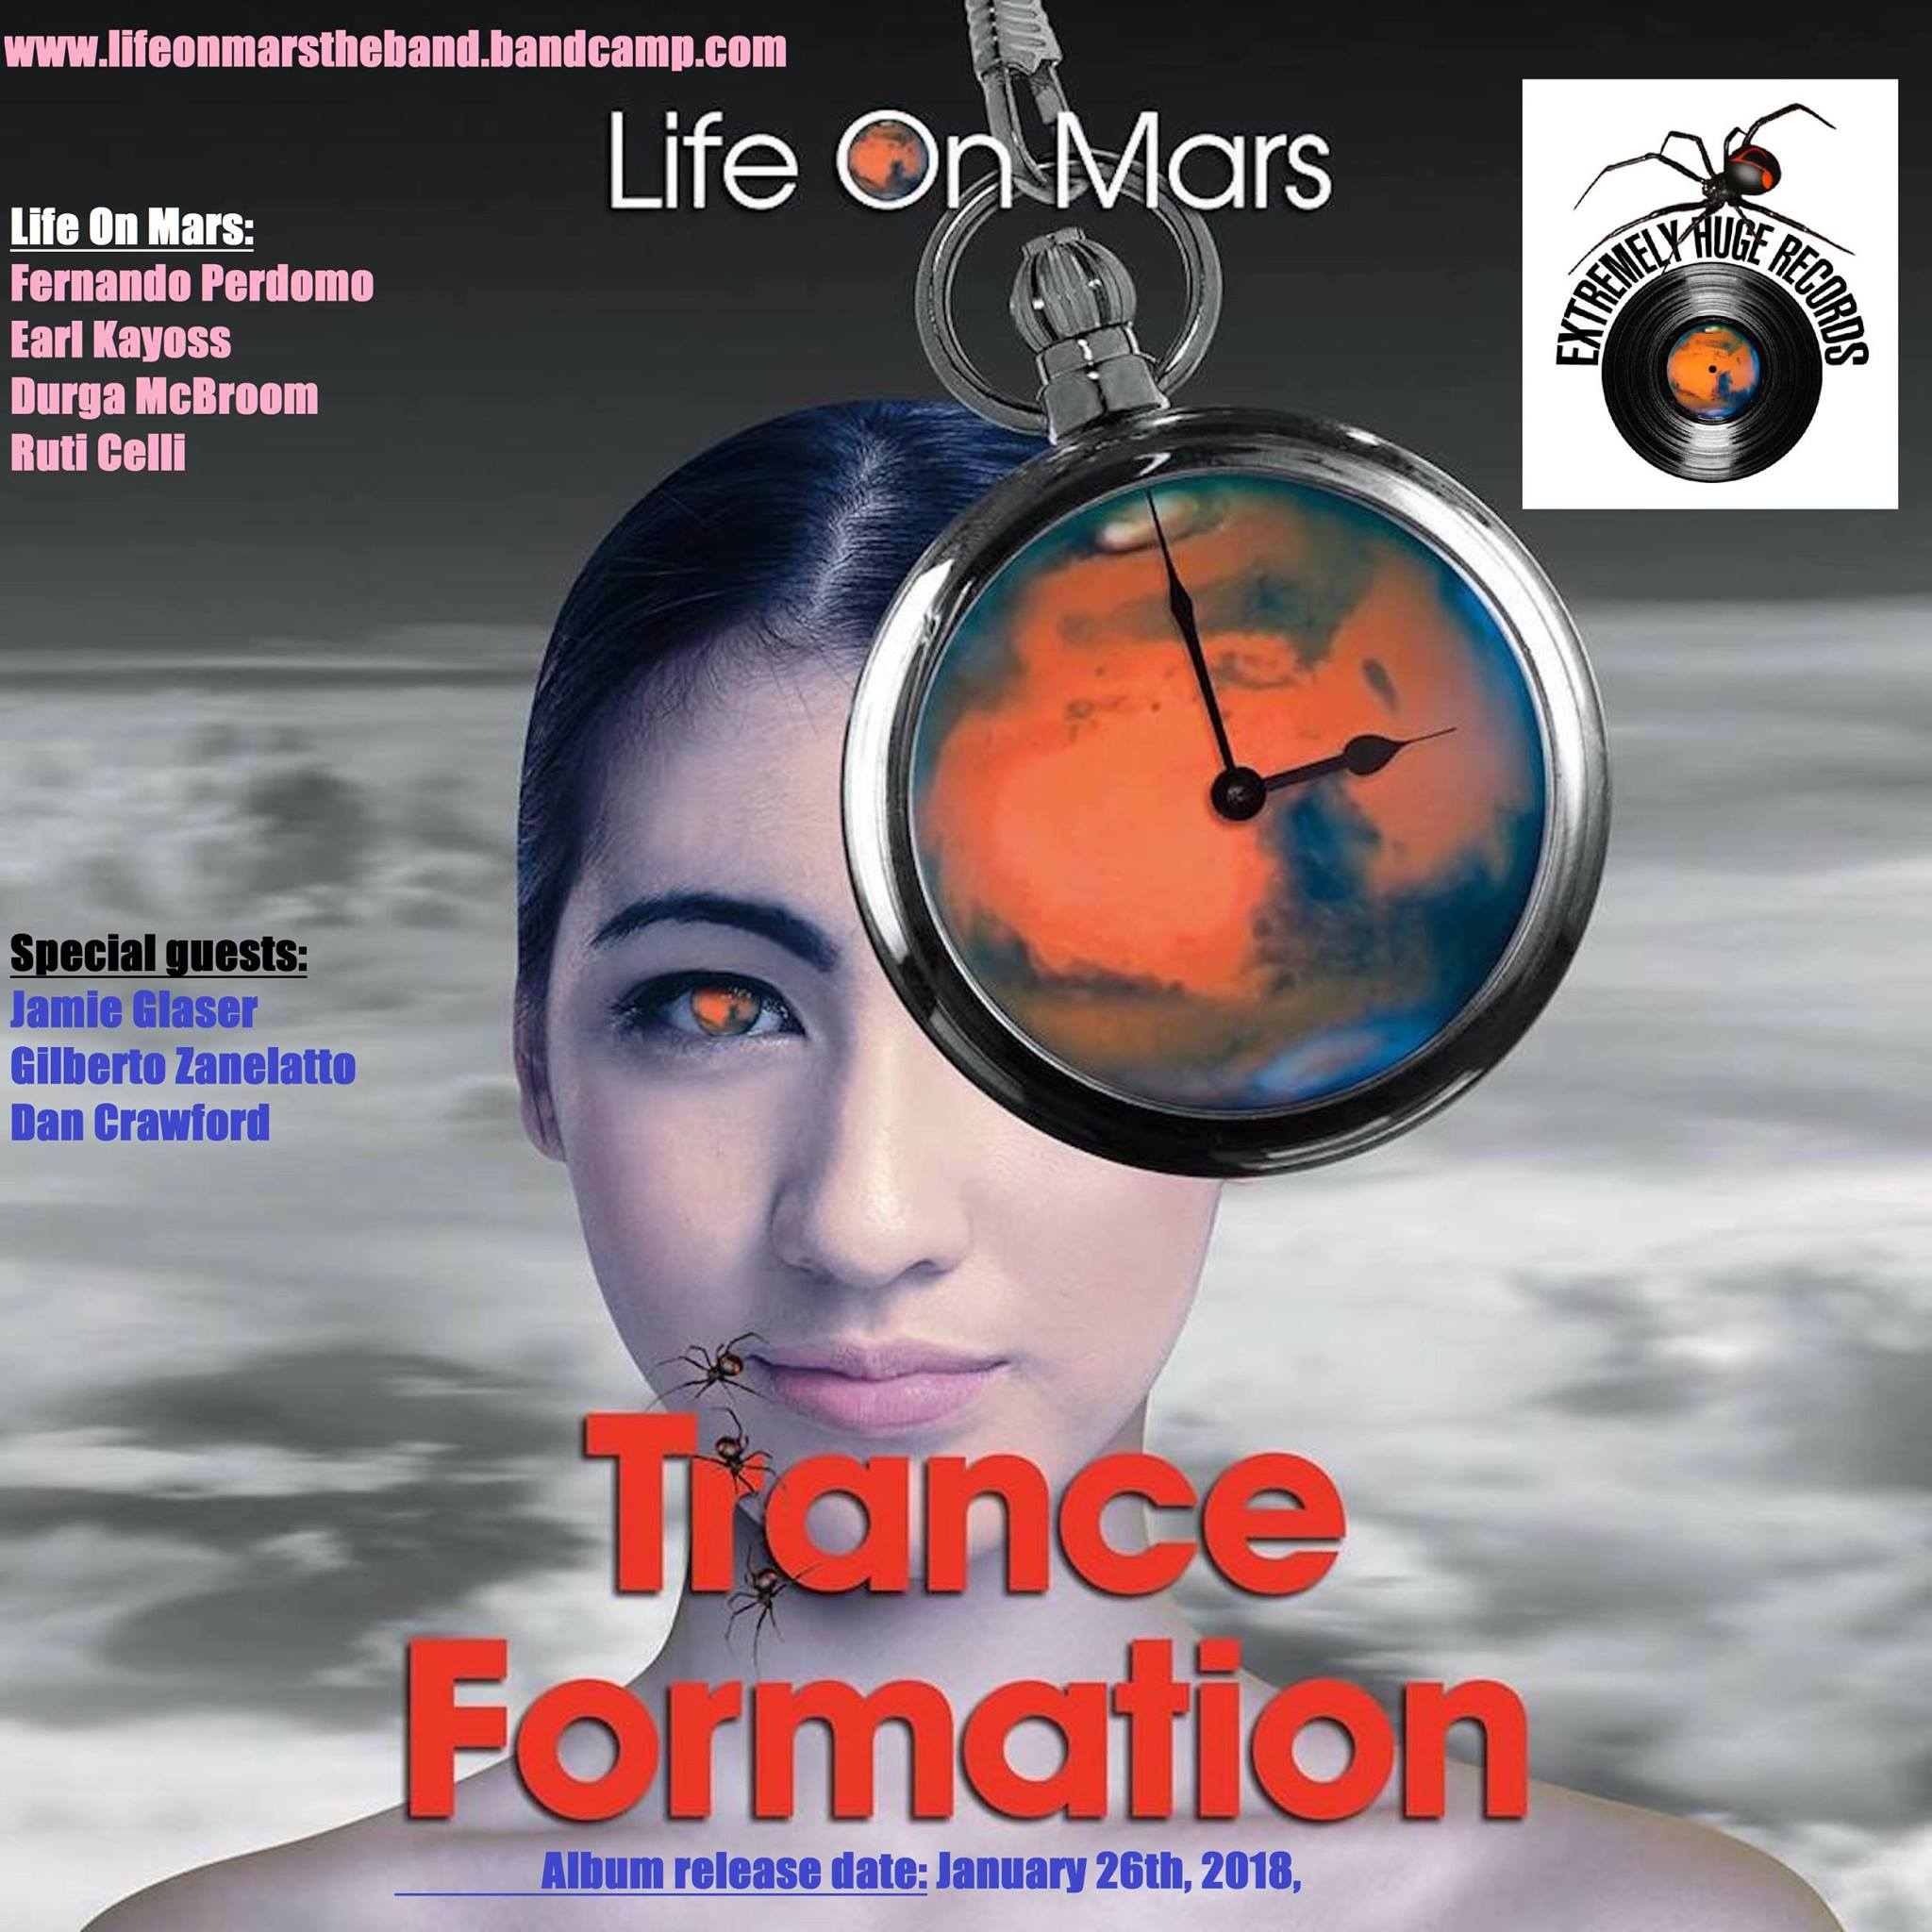 Life On Mars - Trance Formation - Promo Art 2 FB.jpg